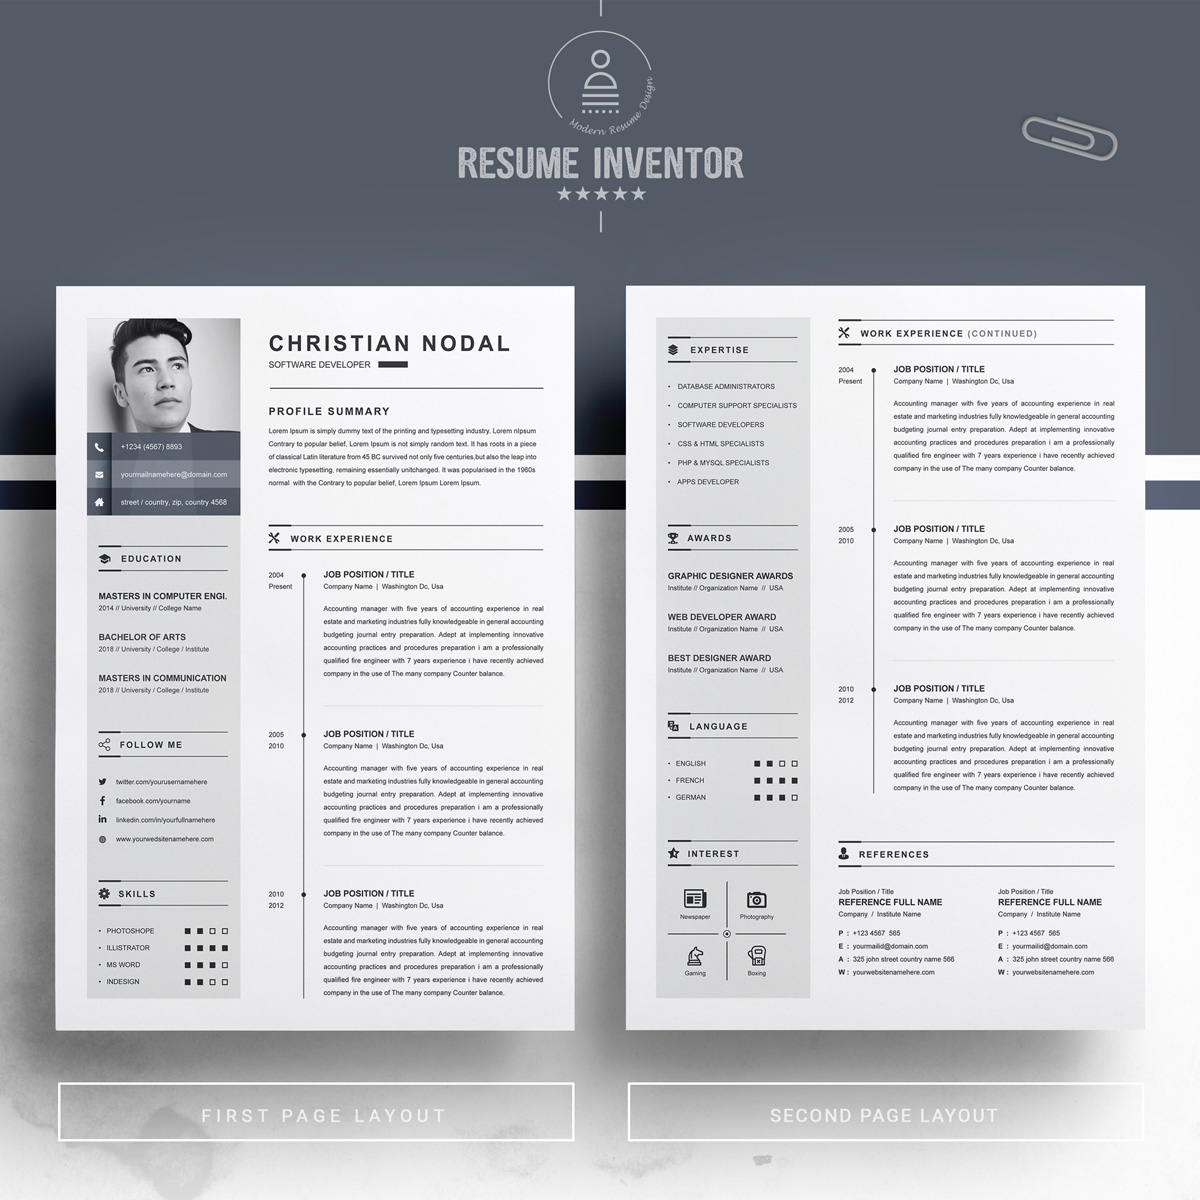 https://s3u.tmimgcdn.com/1860567-1553349815190_02_2-Pages-Free-Resume-Design-Template.jpg